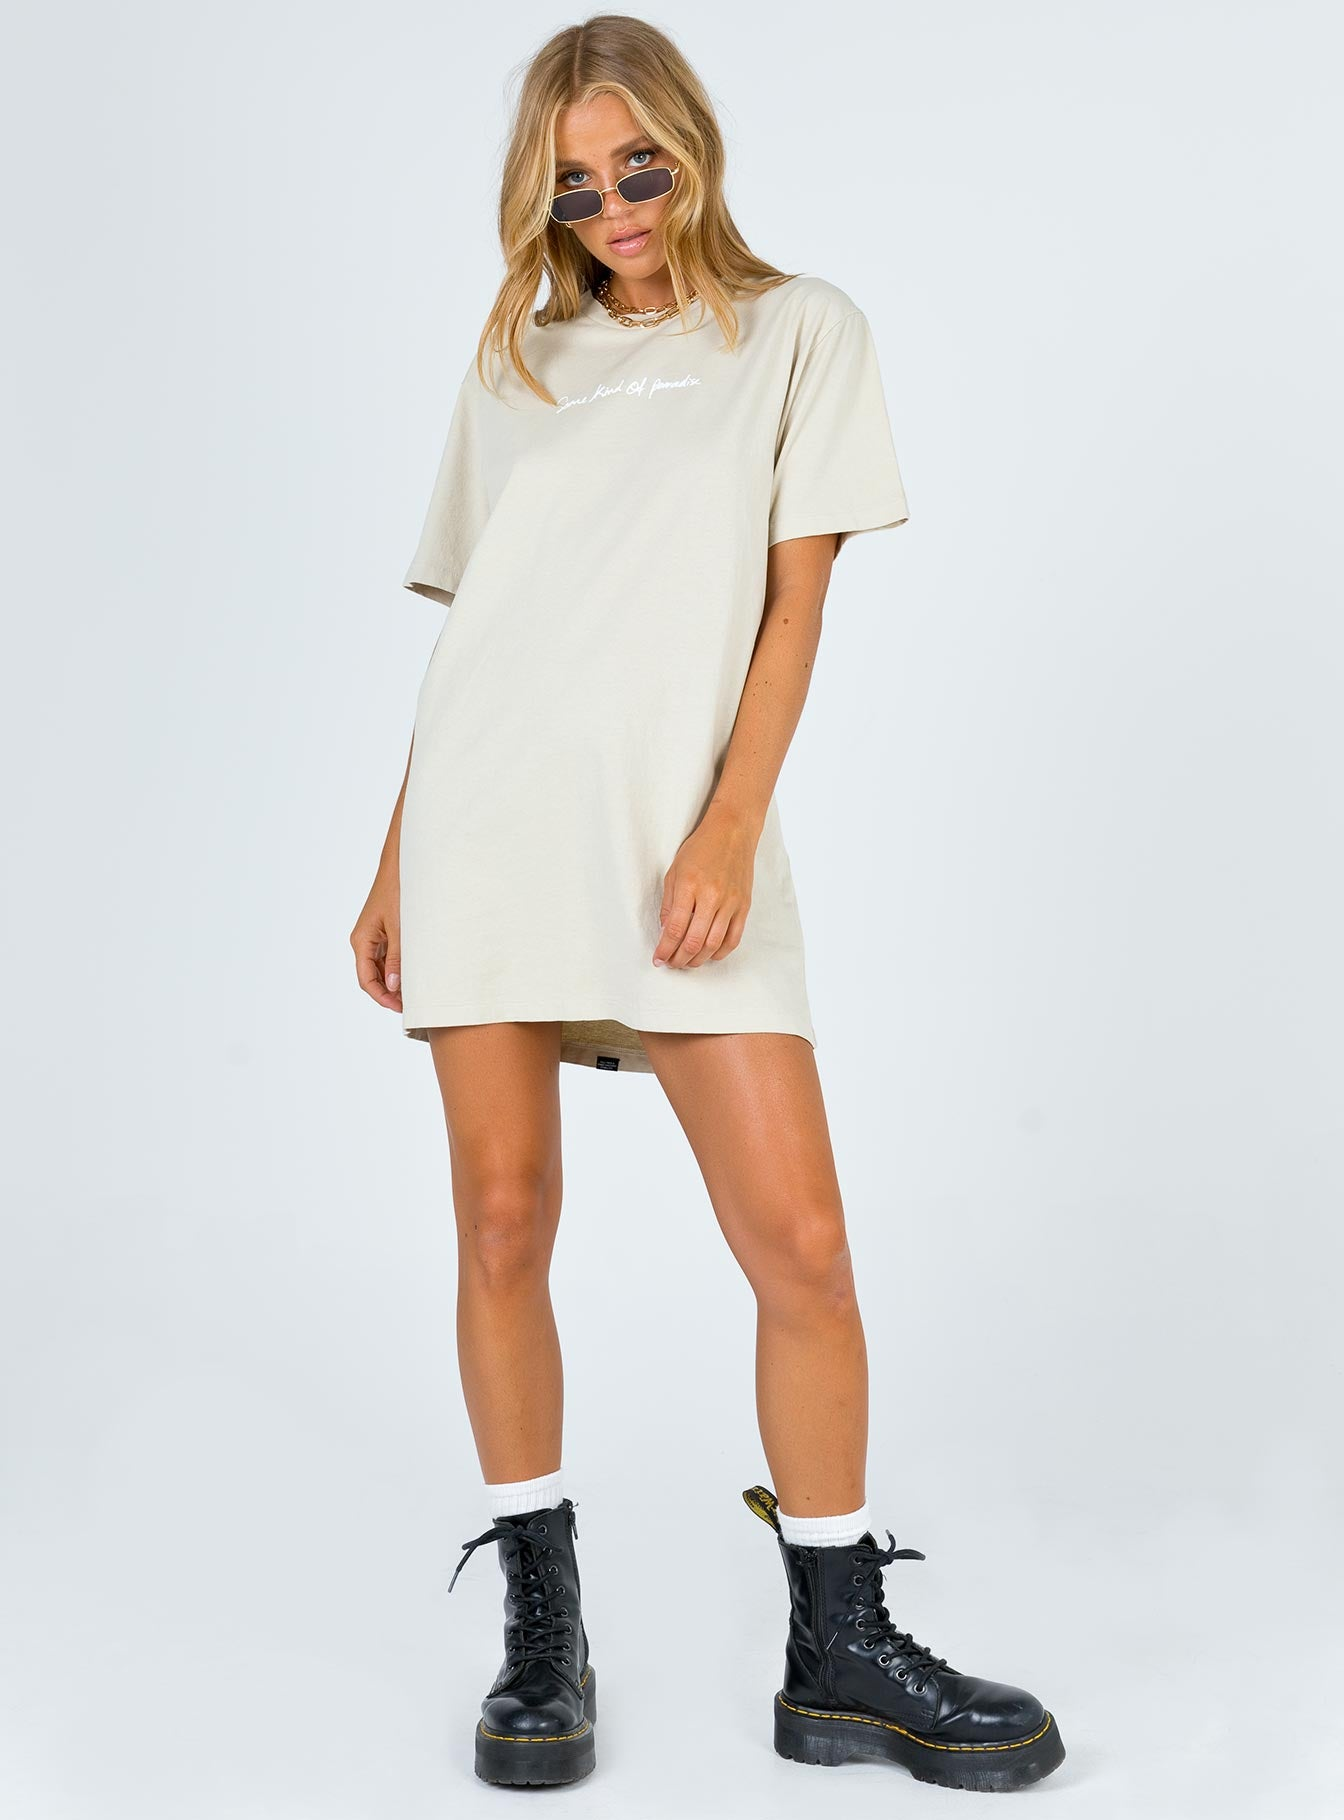 Thrills Traveller Merch Fit Tee Dress Peyote